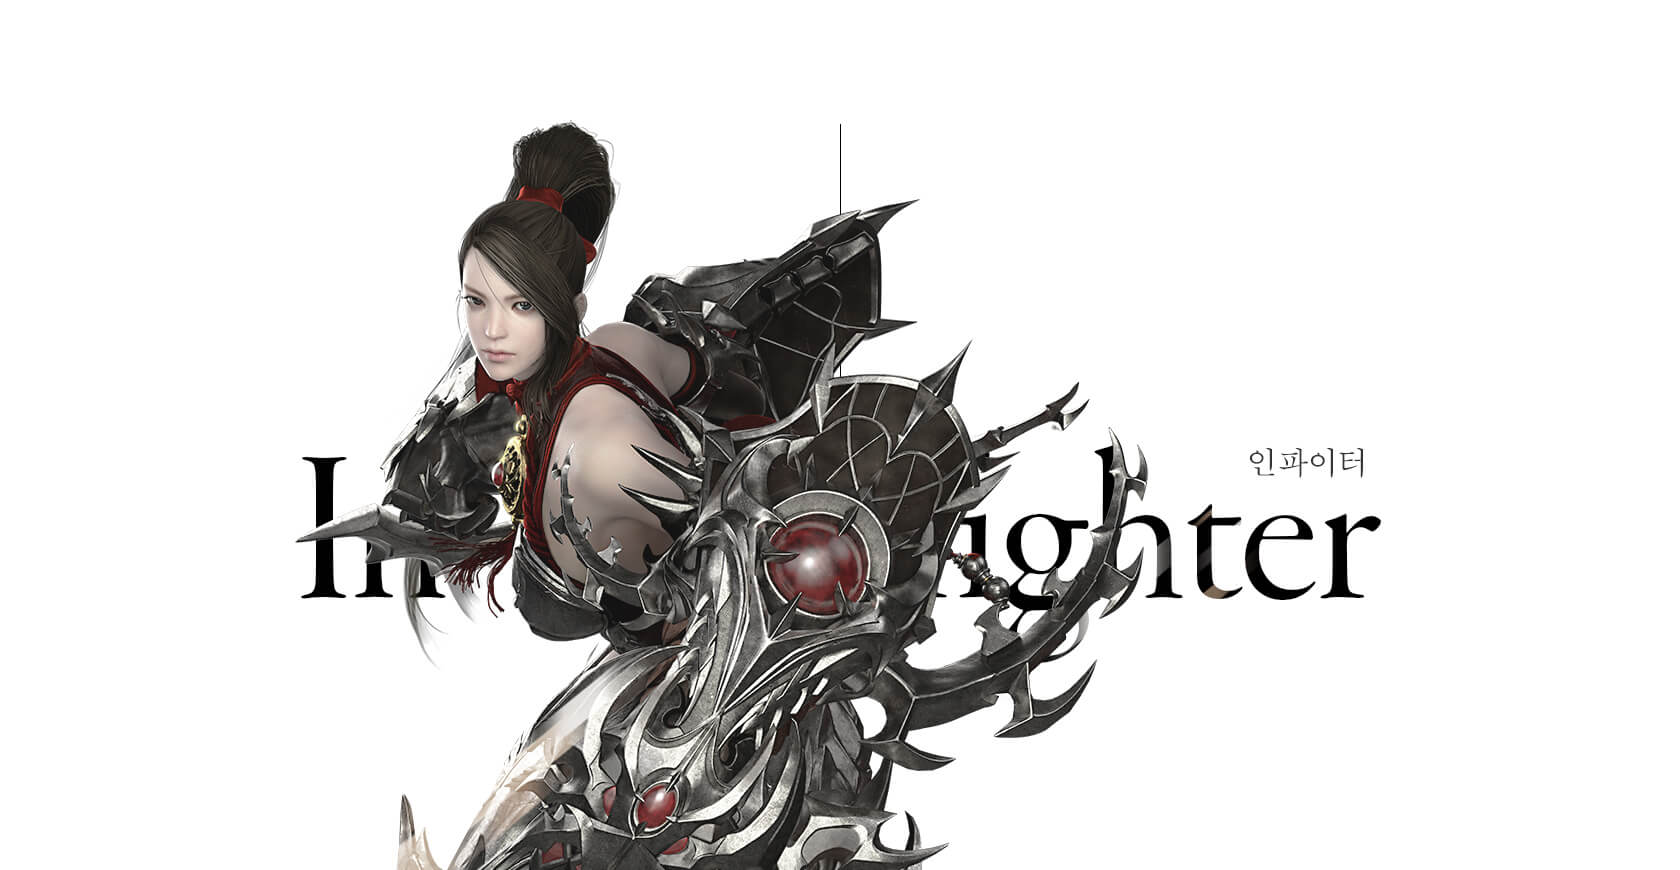 Infighter Lost Ark Final CBT